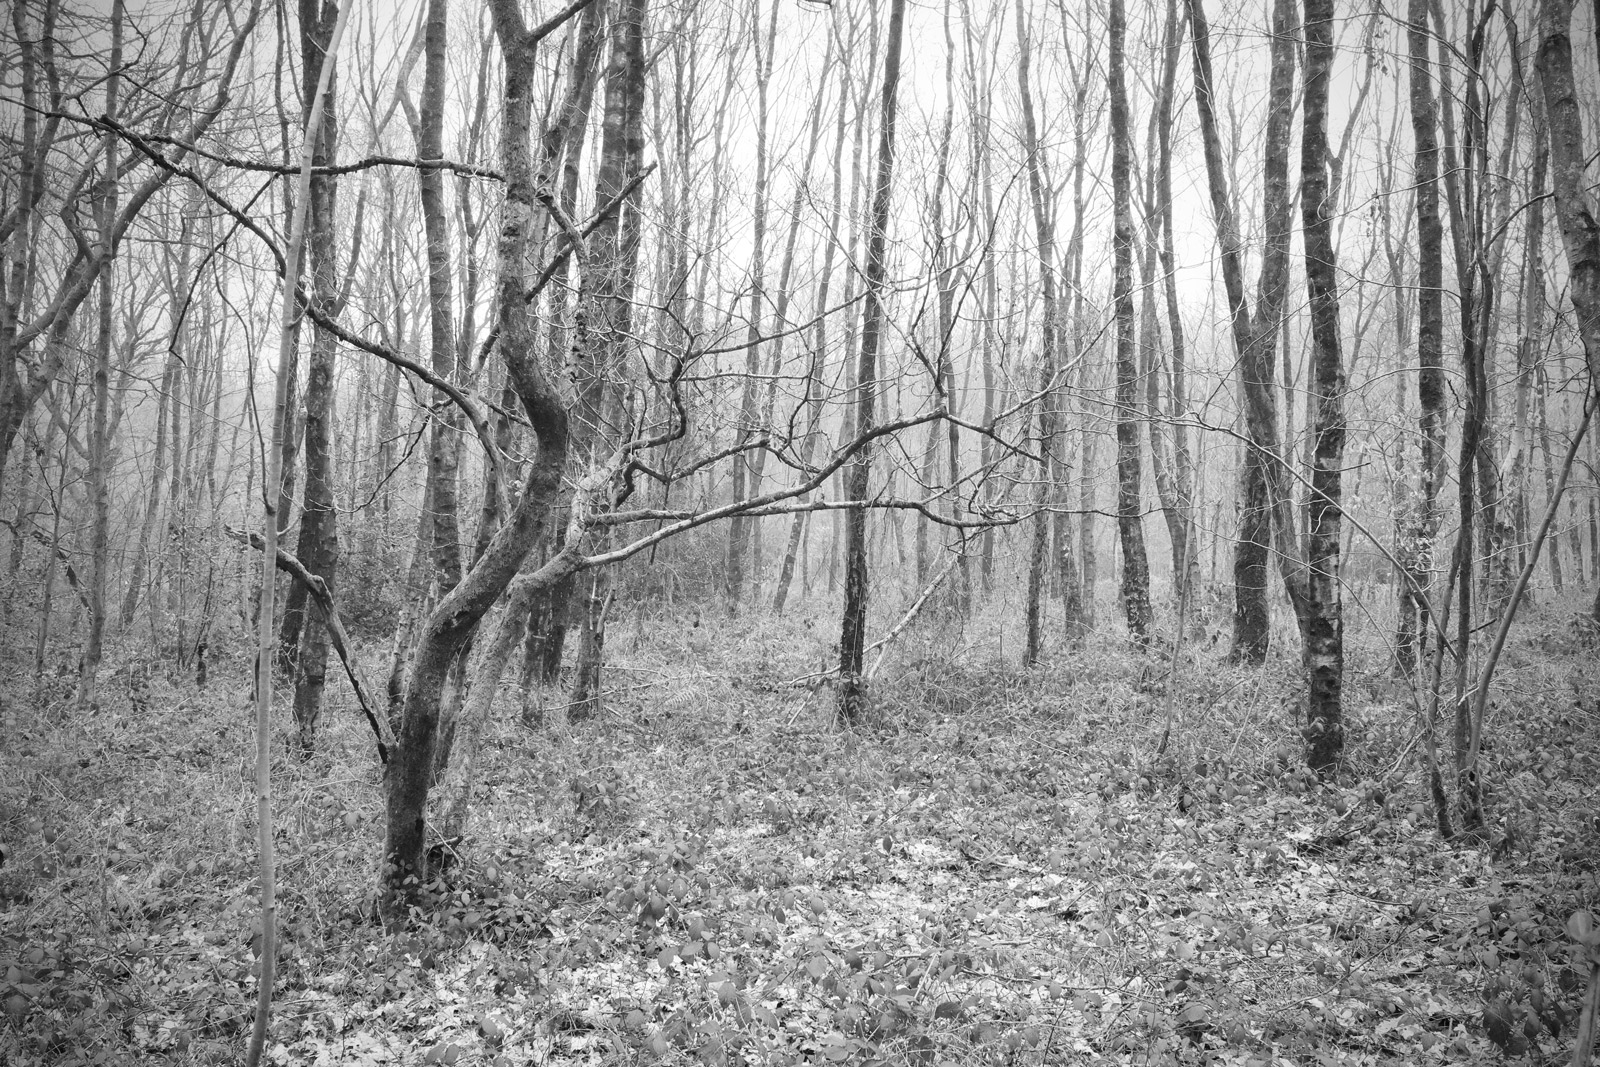 Clowes Wood in Black and White